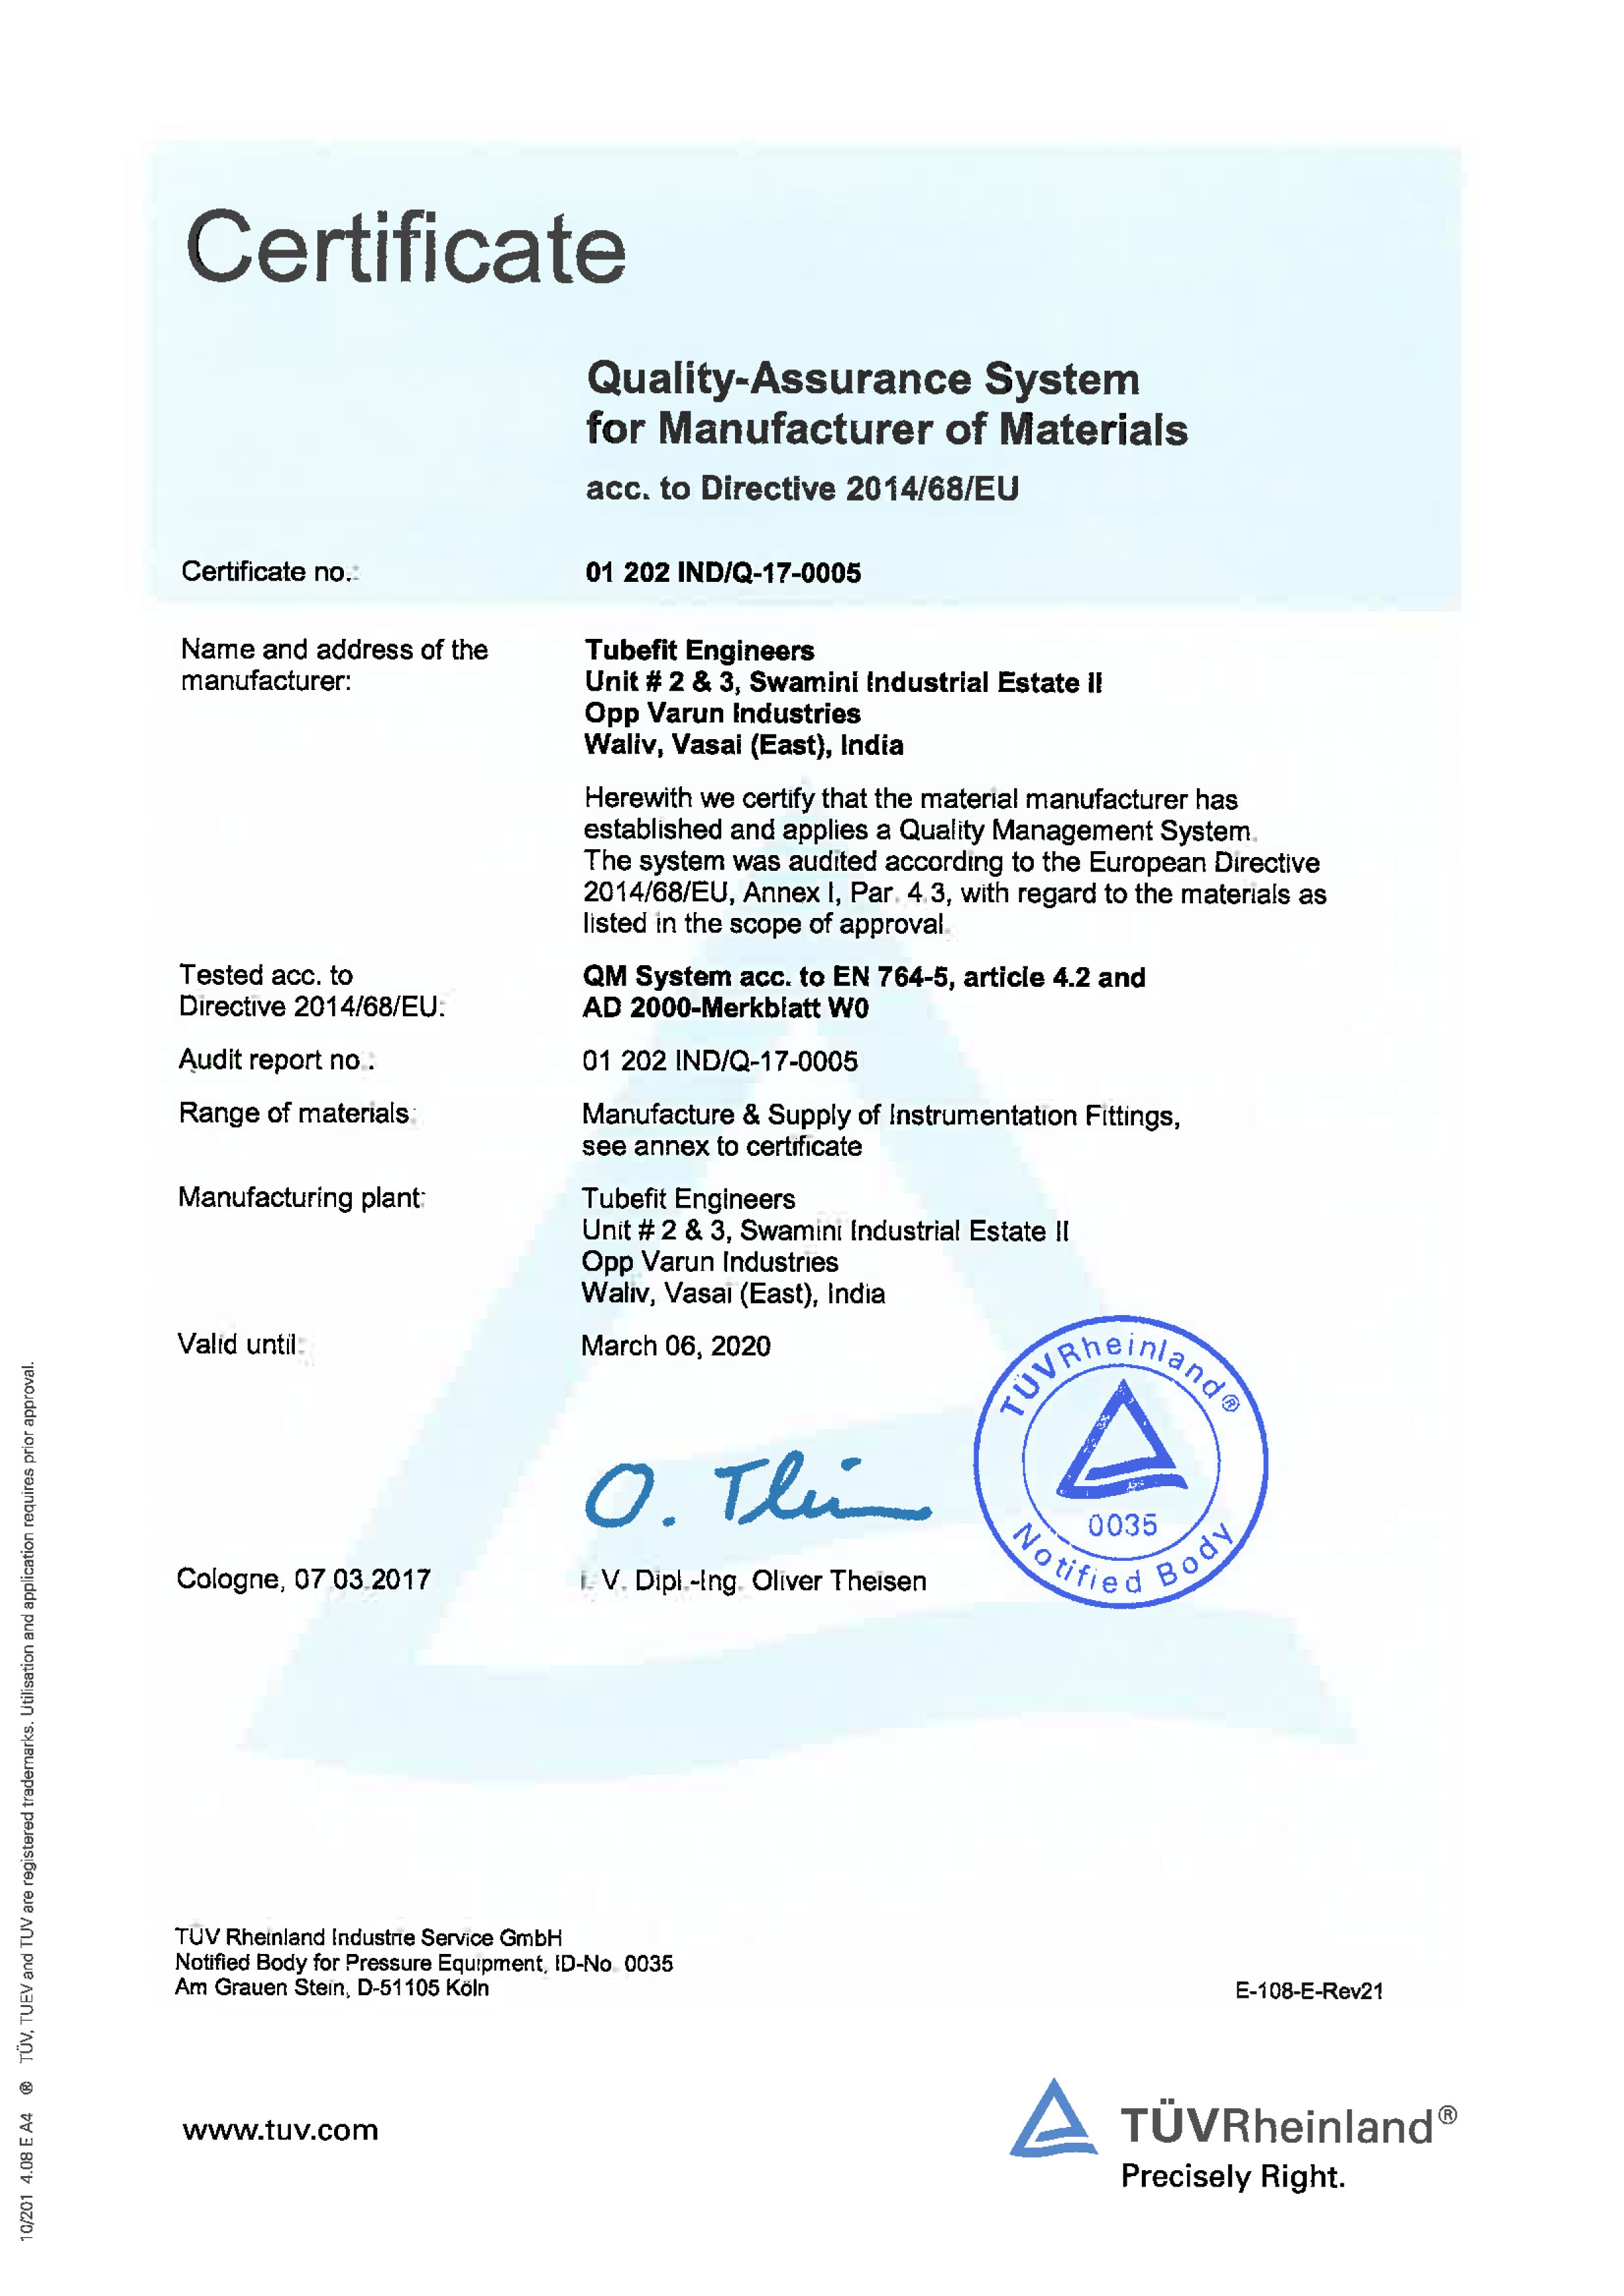 Quality-Assurance System for Manufacturer of Materials acc. to Directive 2014/68/EU